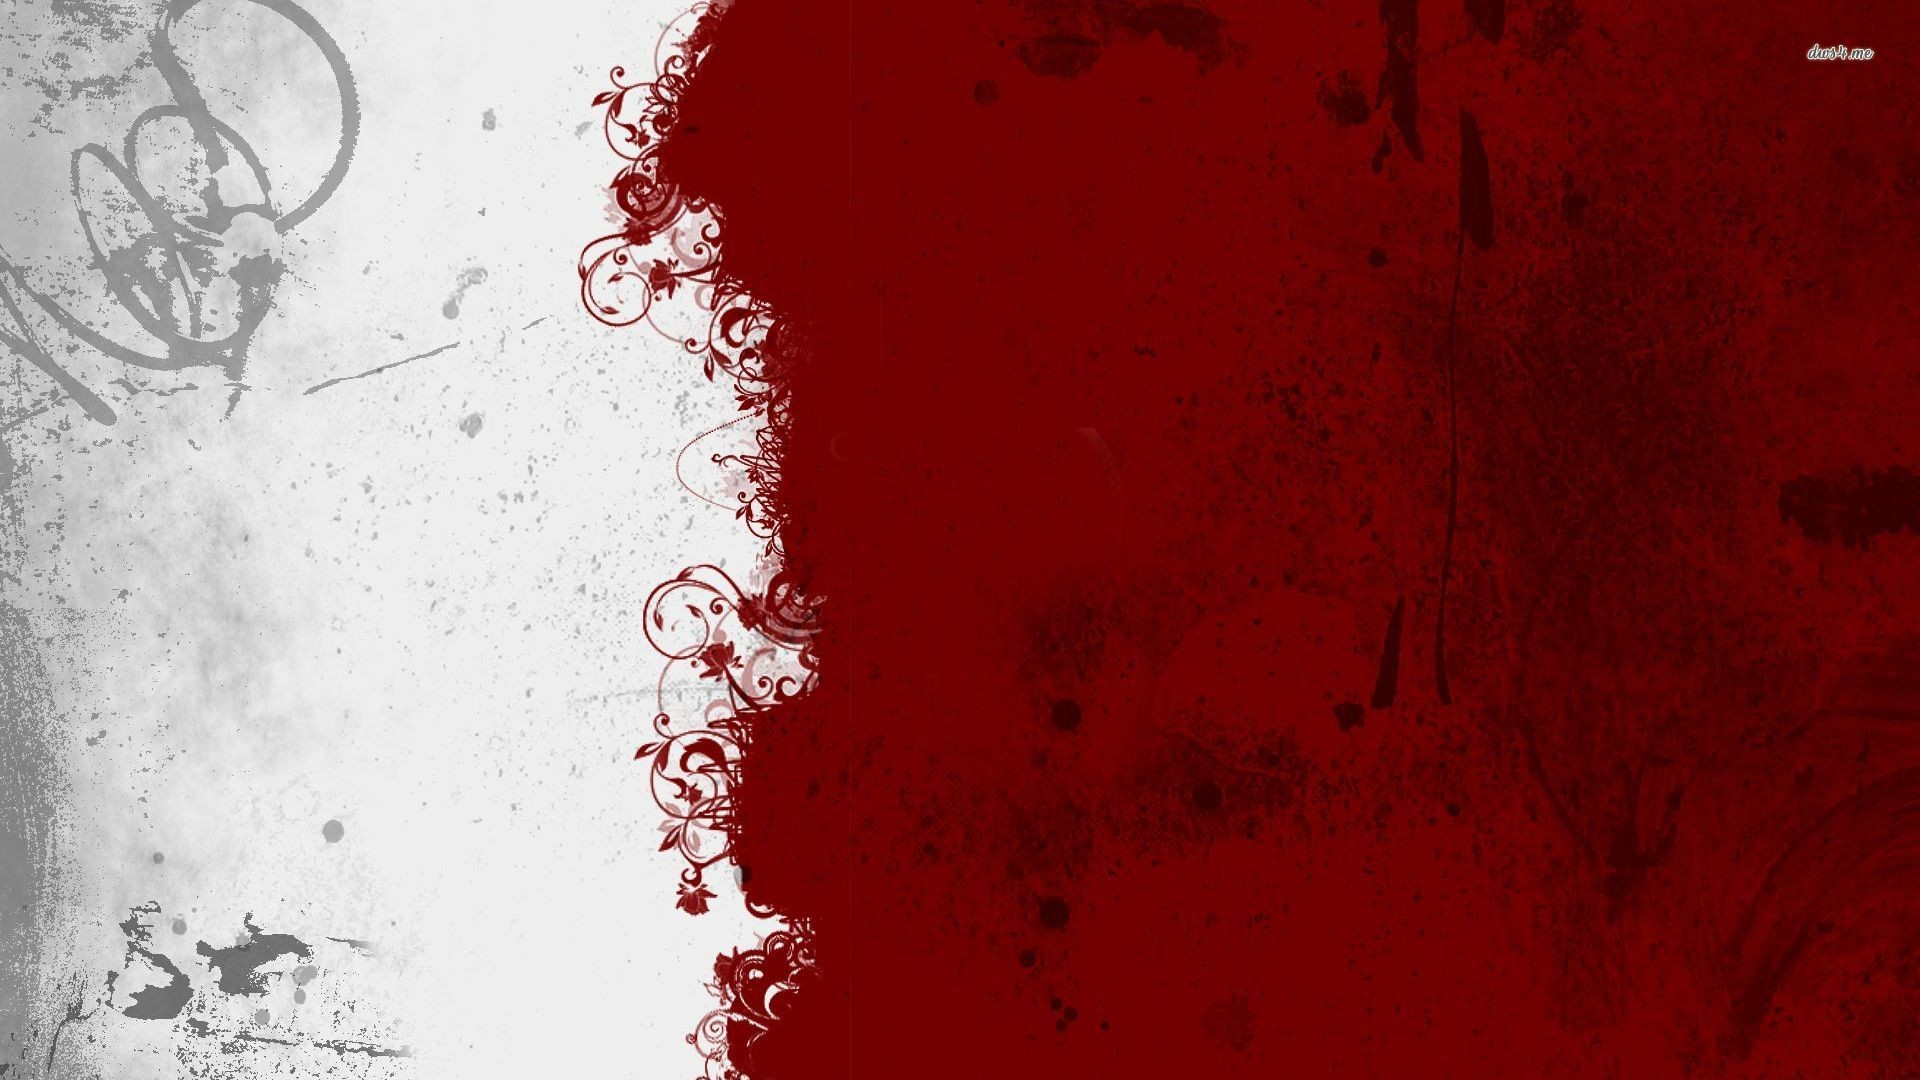 Red and White background 42+